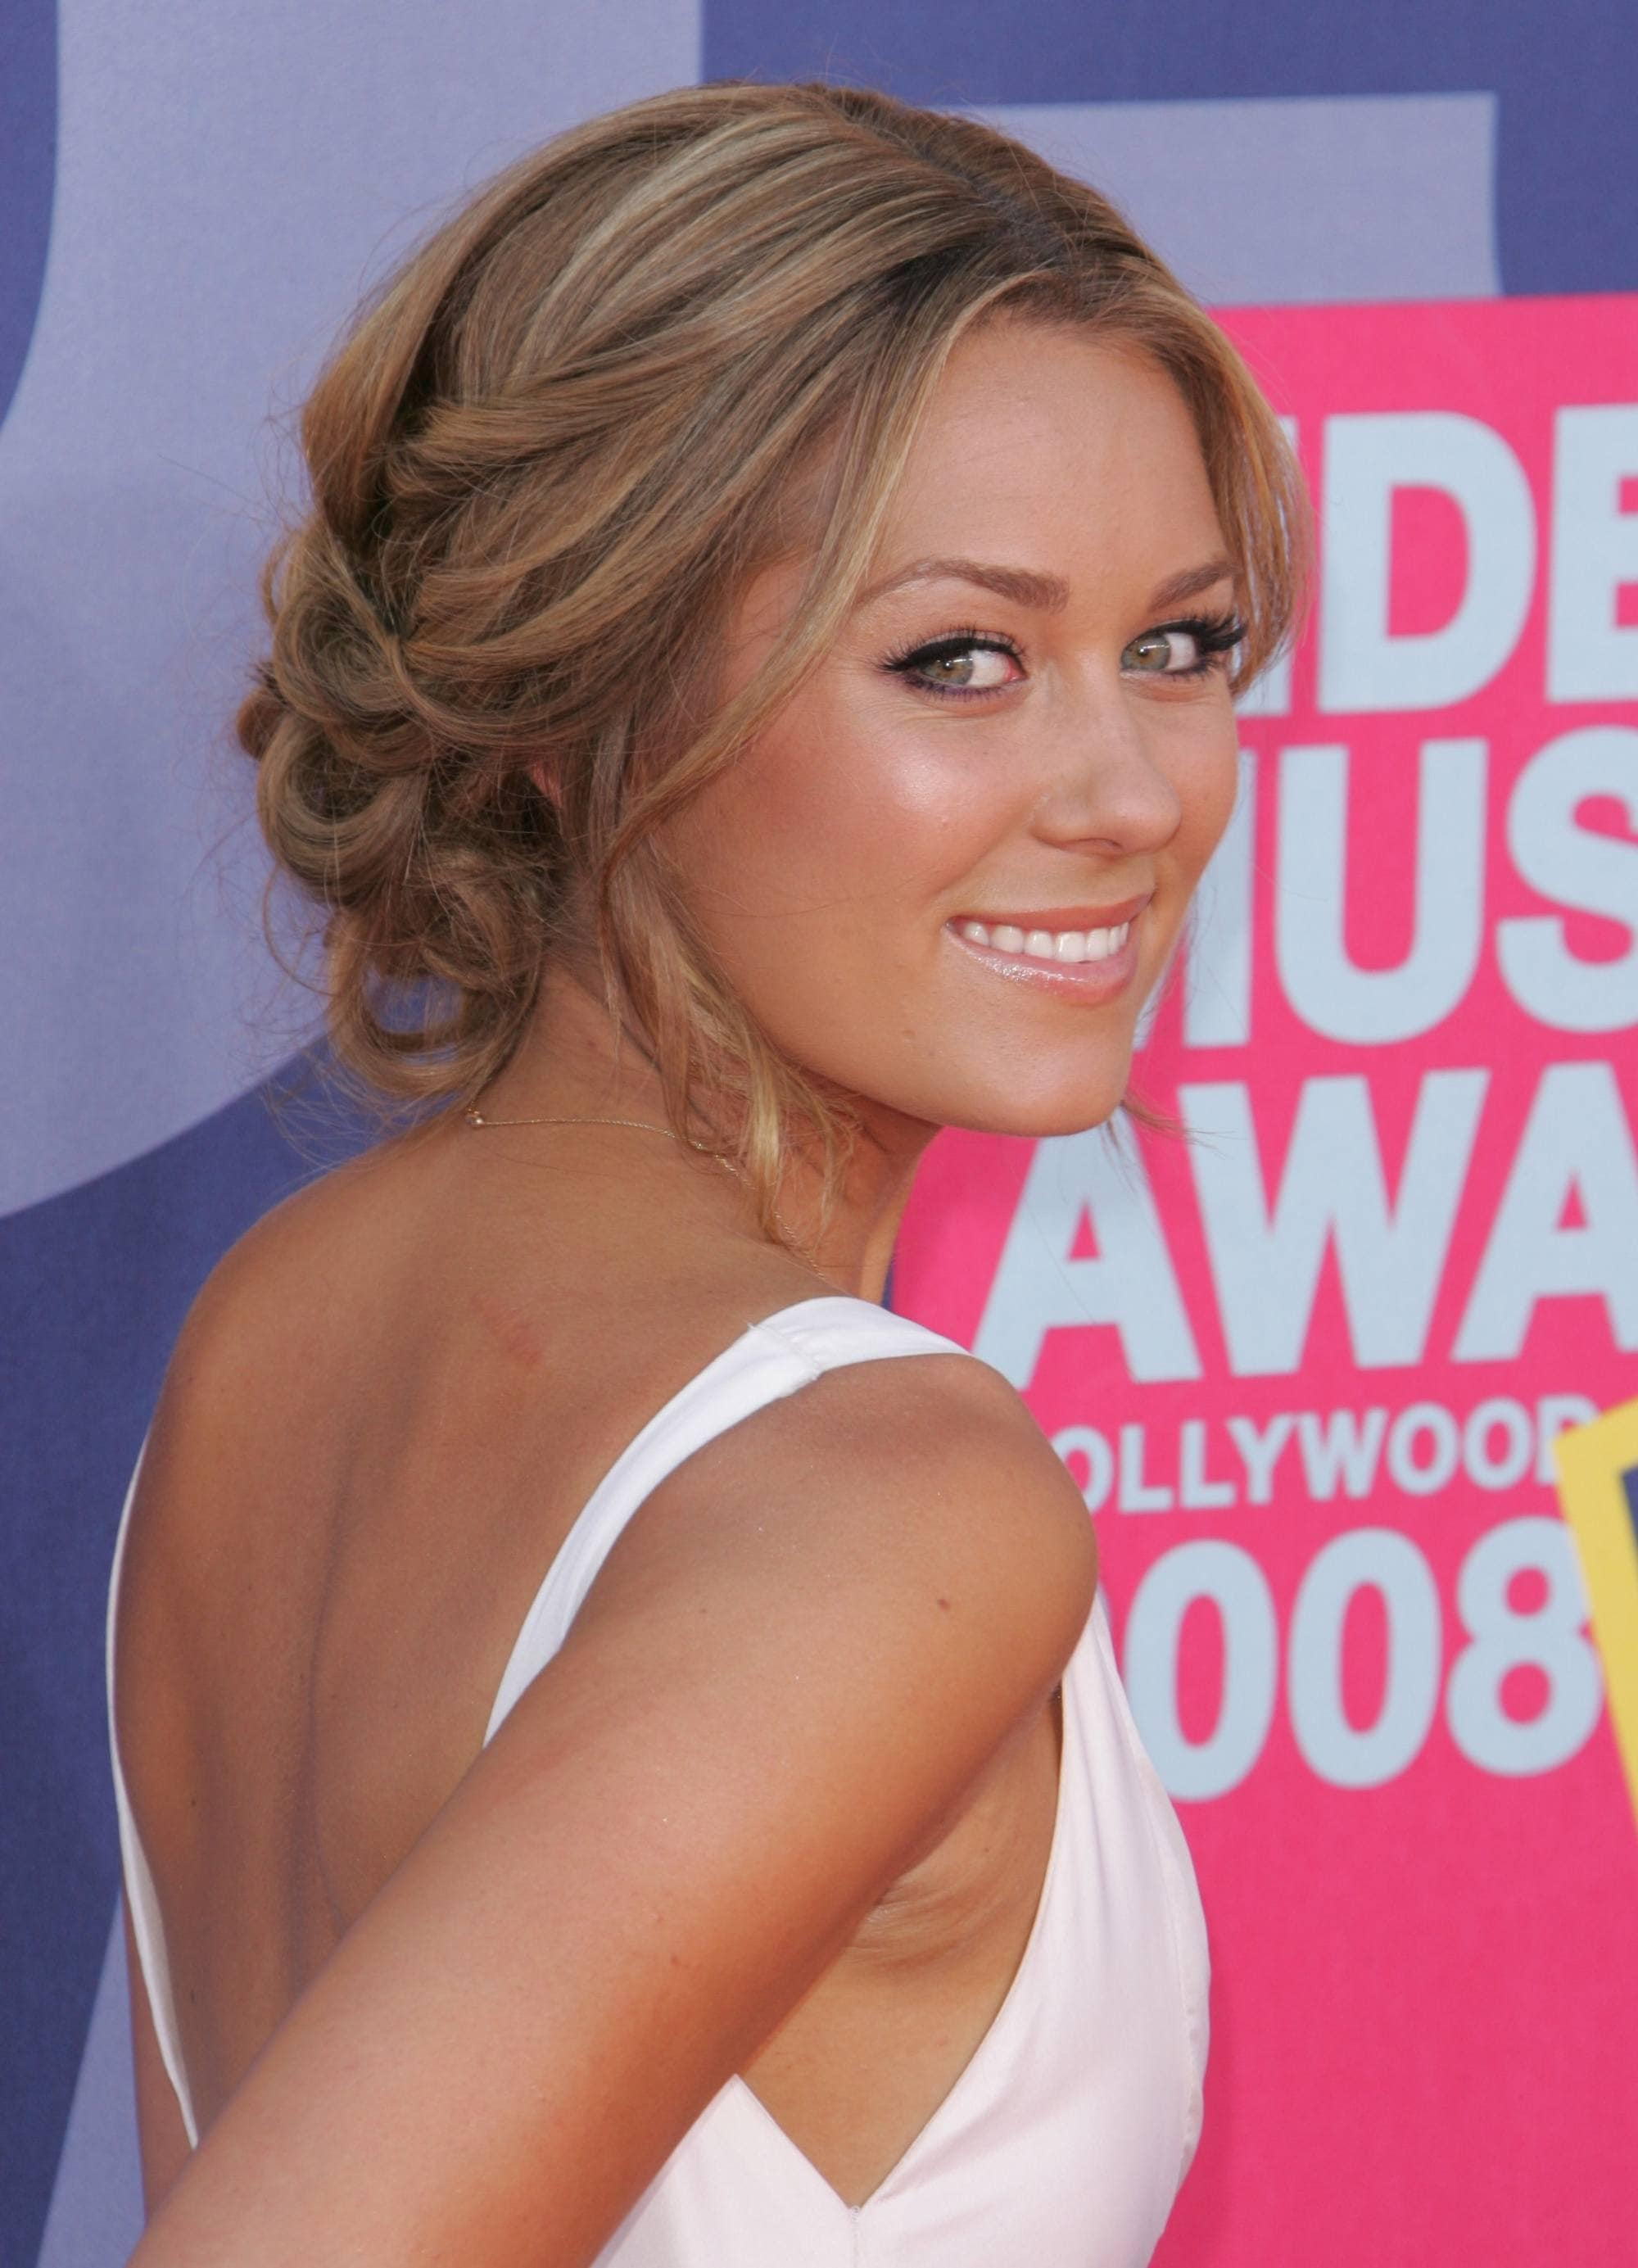 Lauren Conrad from MTV's The Hills with her blonde hair in a Grecian inspired updo chignon